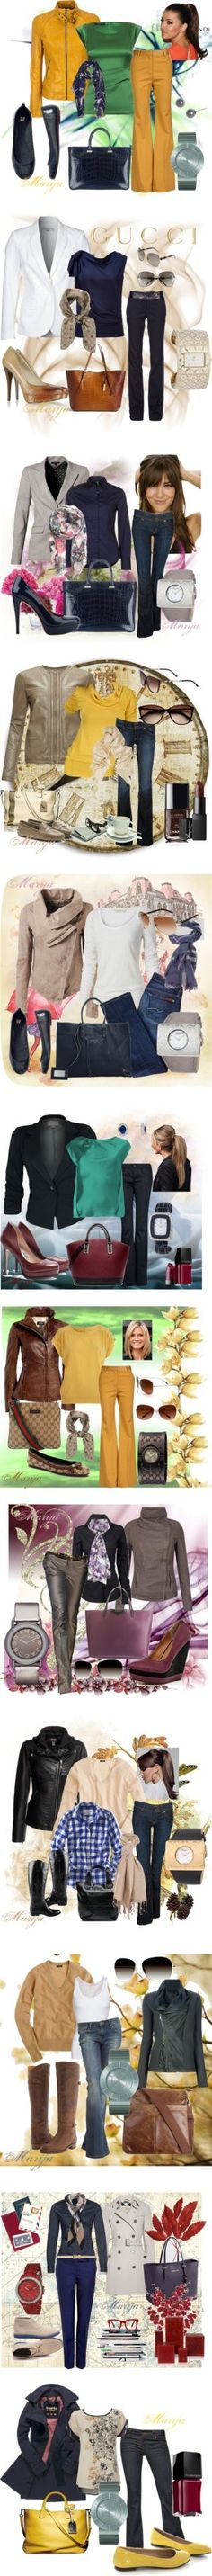 """""""Bussines woman"""" by marija787 ❤ liked on Polyvore"""